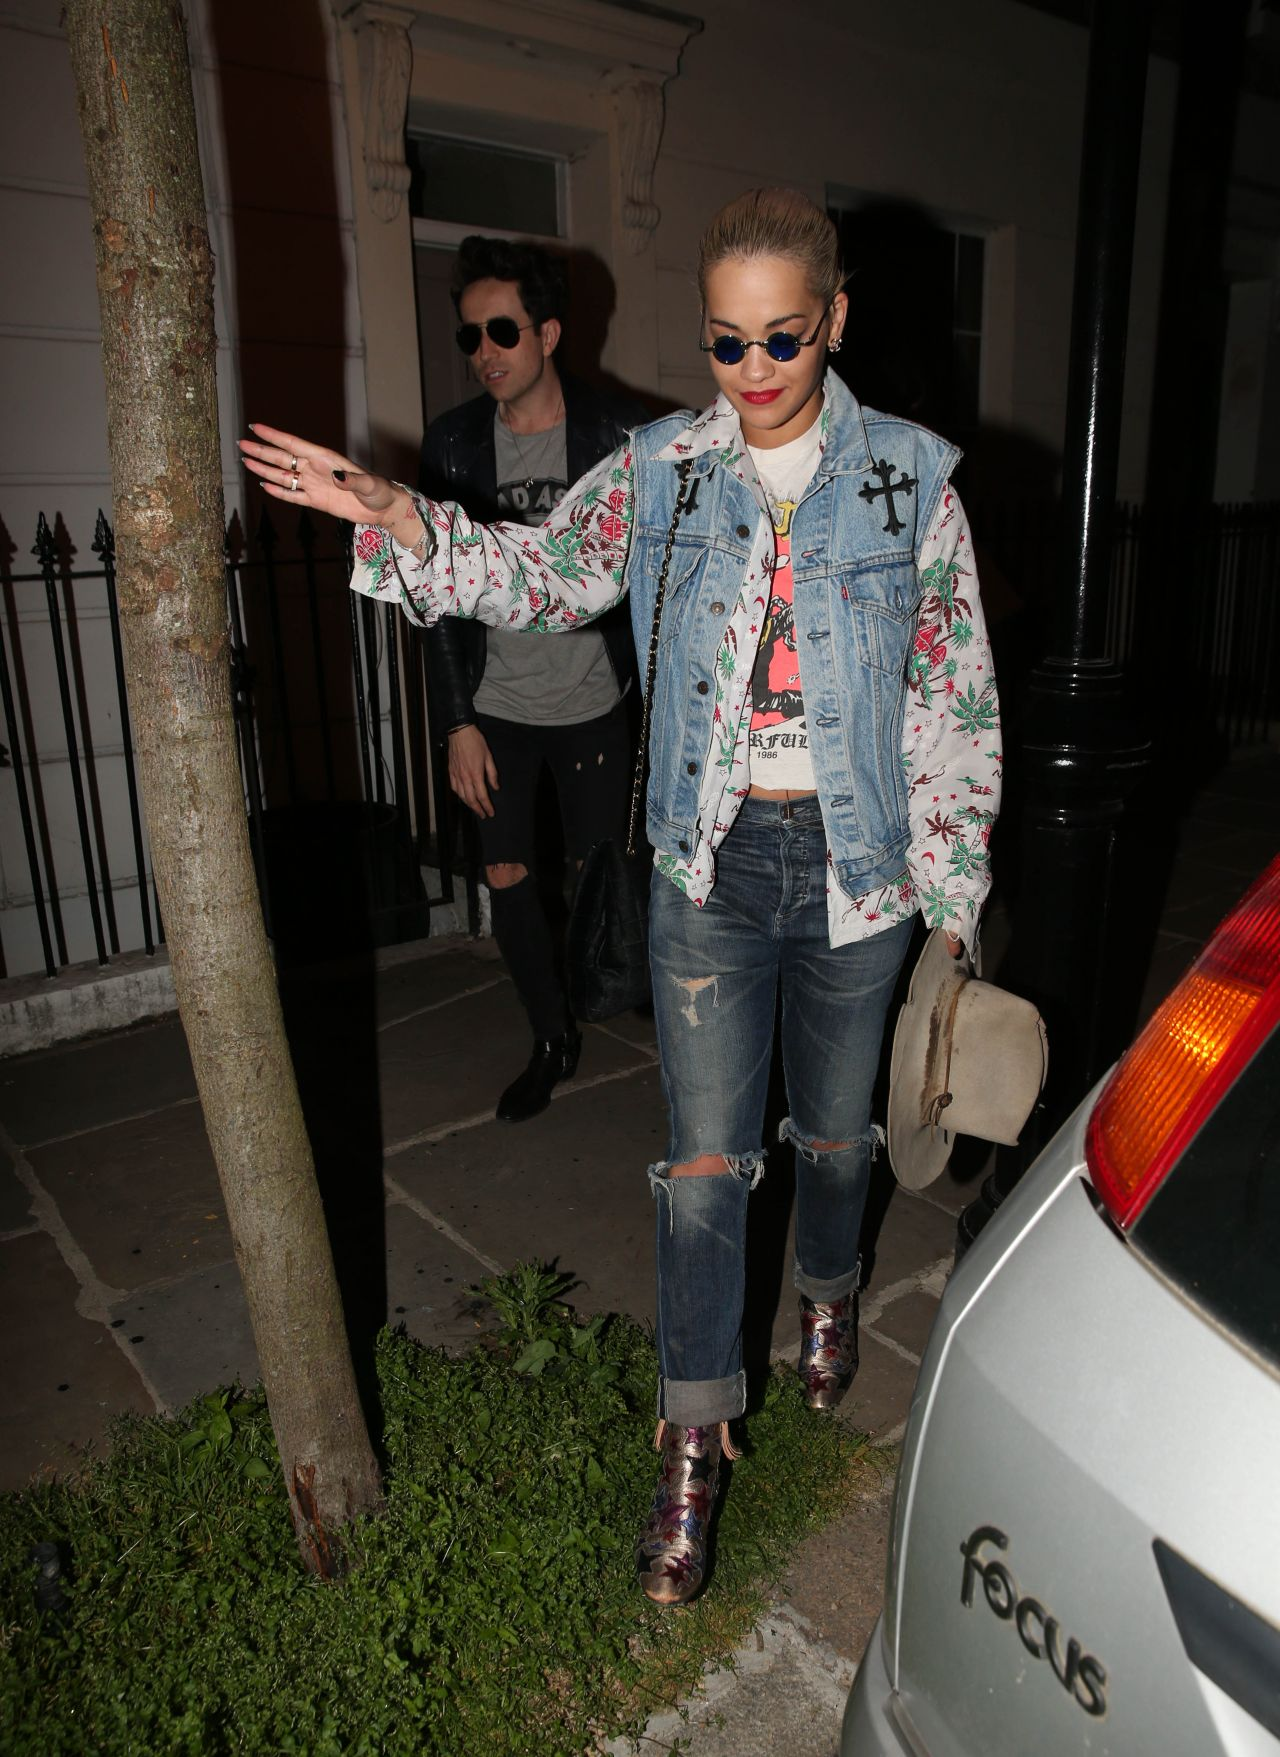 Rita Ora Leaving A Party At A Friend S House In London